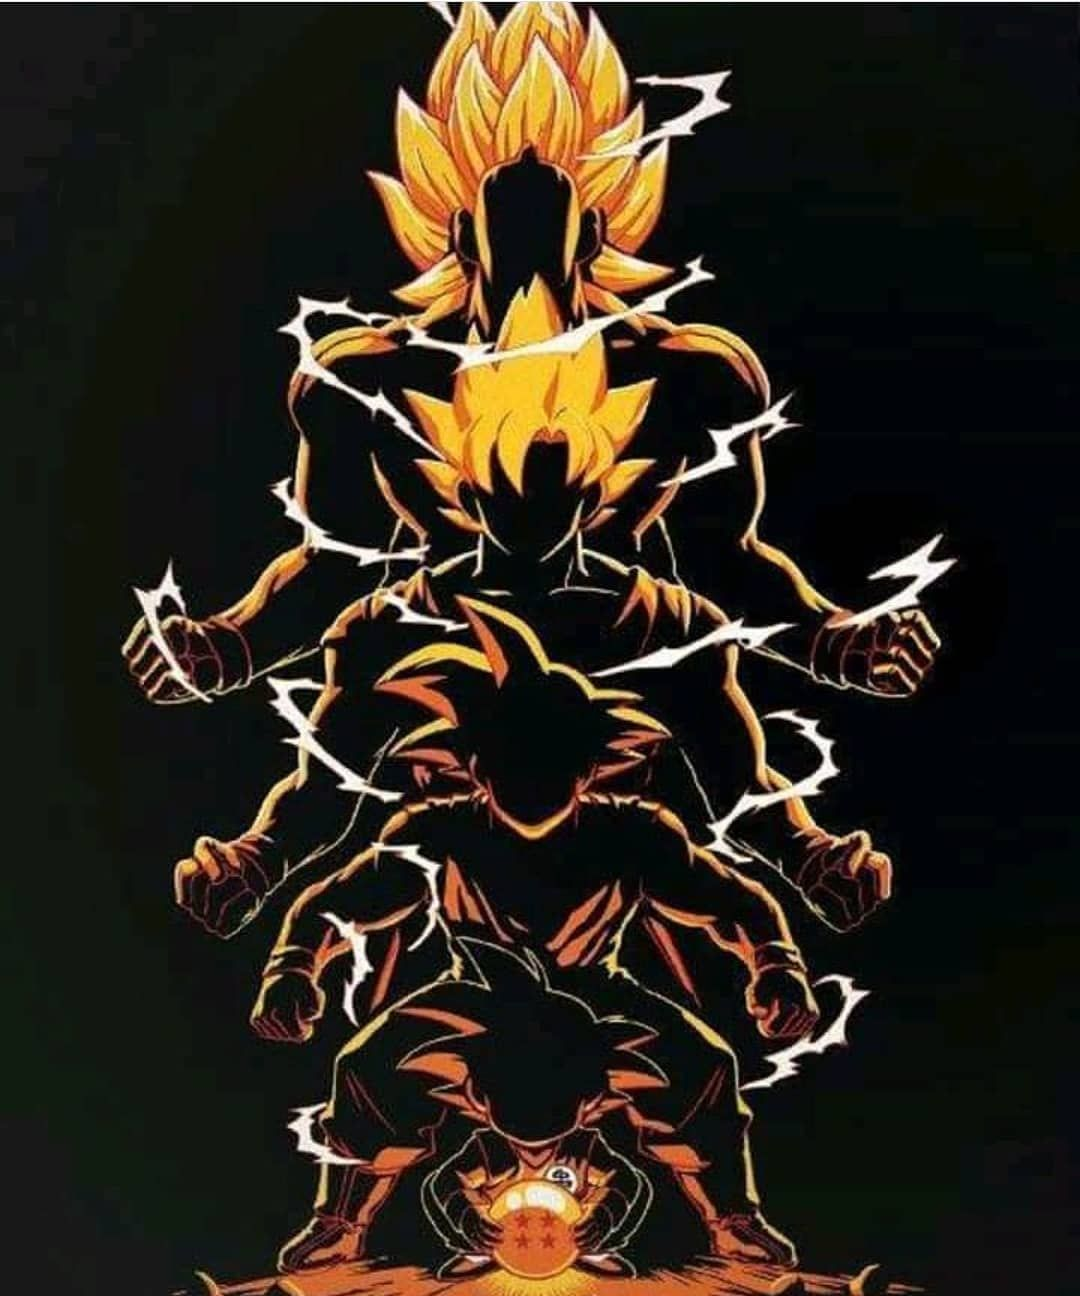 The Evolution Of Goku Follow Officiall Gogeta For More Tag Friends Don T Forget To Like An Anime Dragon Ball Super Anime Dragon Ball Dragon Ball Artwork